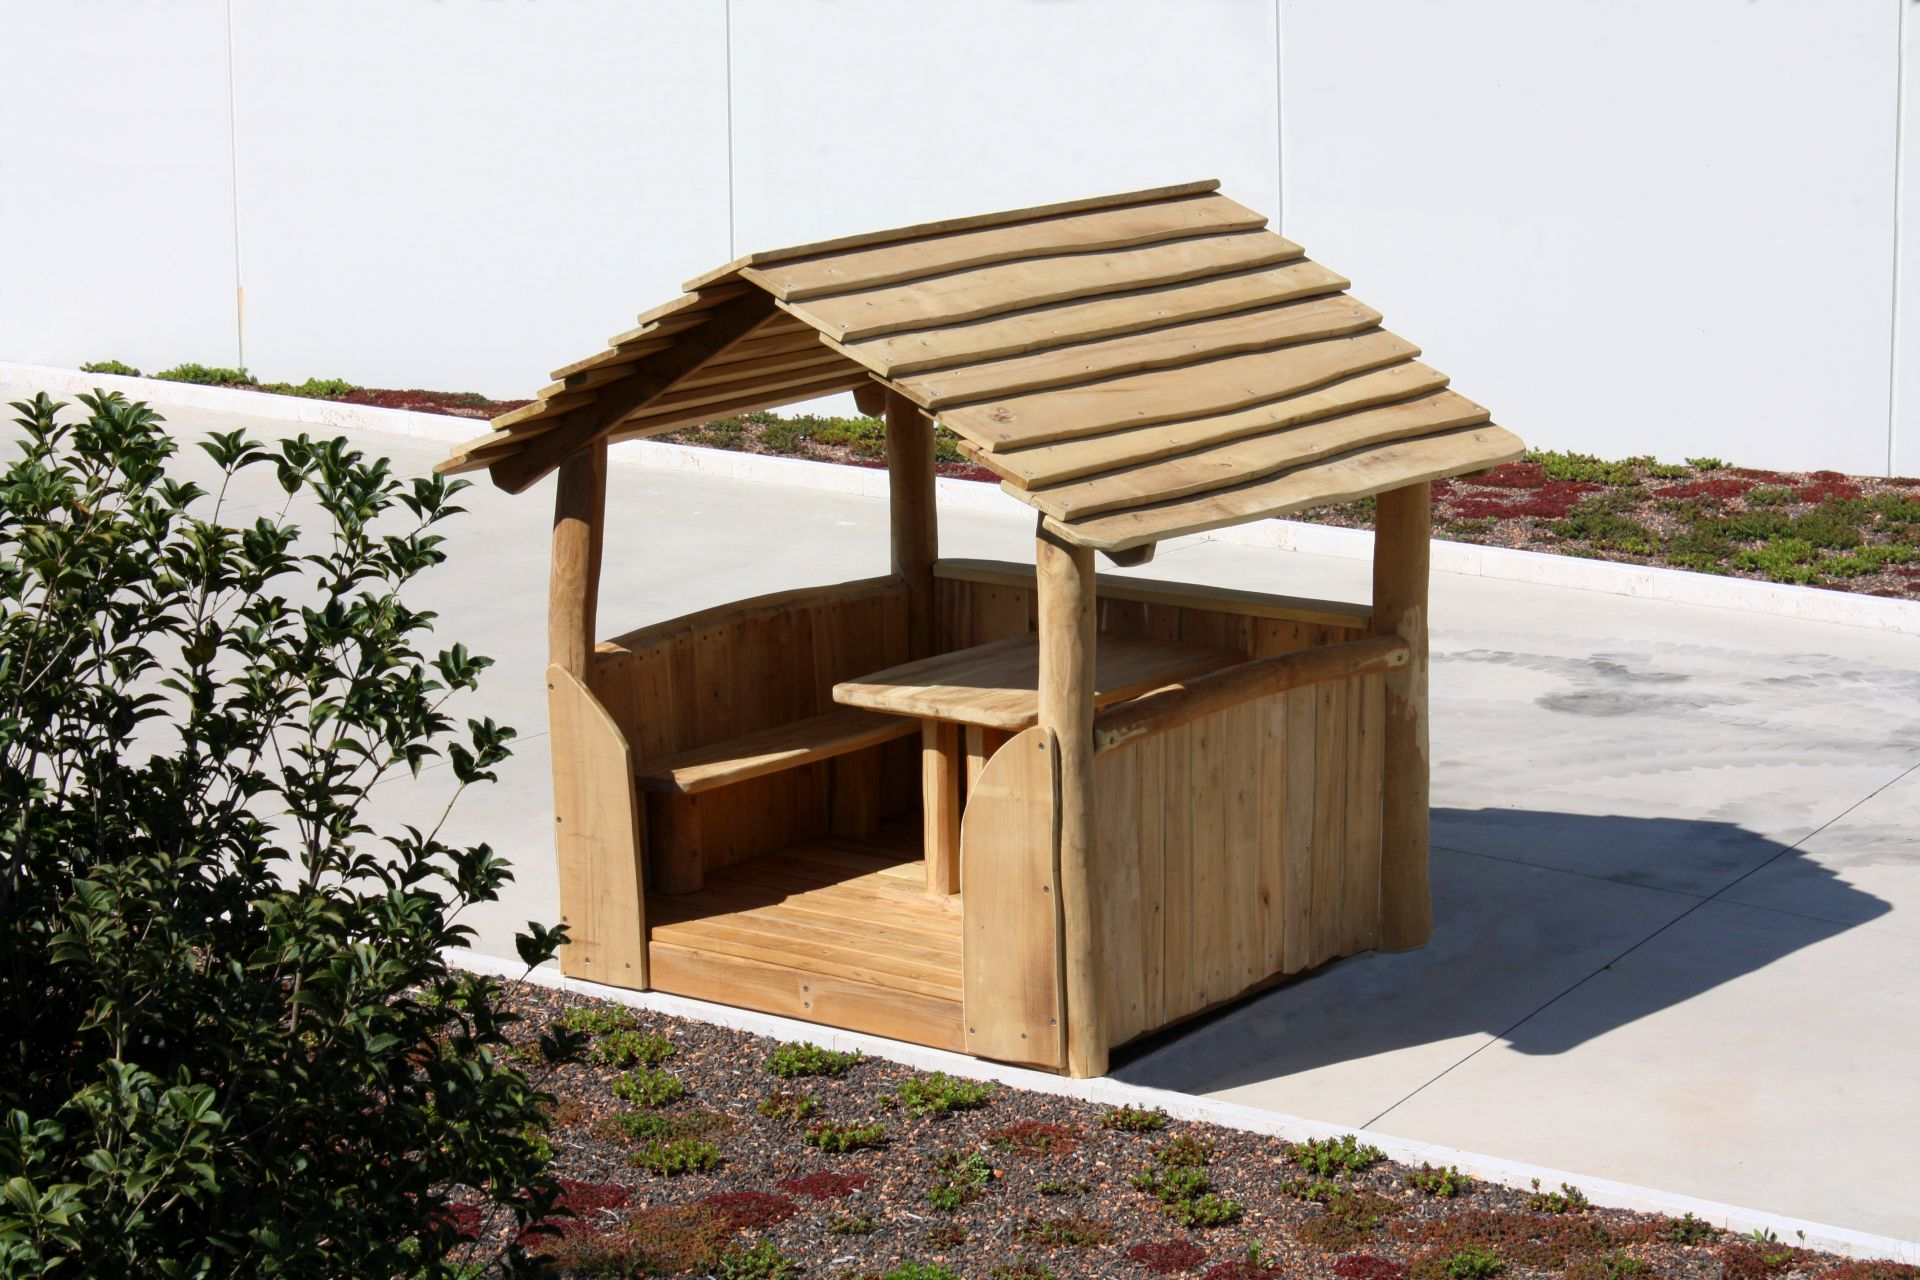 Holzhof COUNTRY (FACILITIES IN ROBINIA WOOD) Playhouse in robinia, natural timber colour